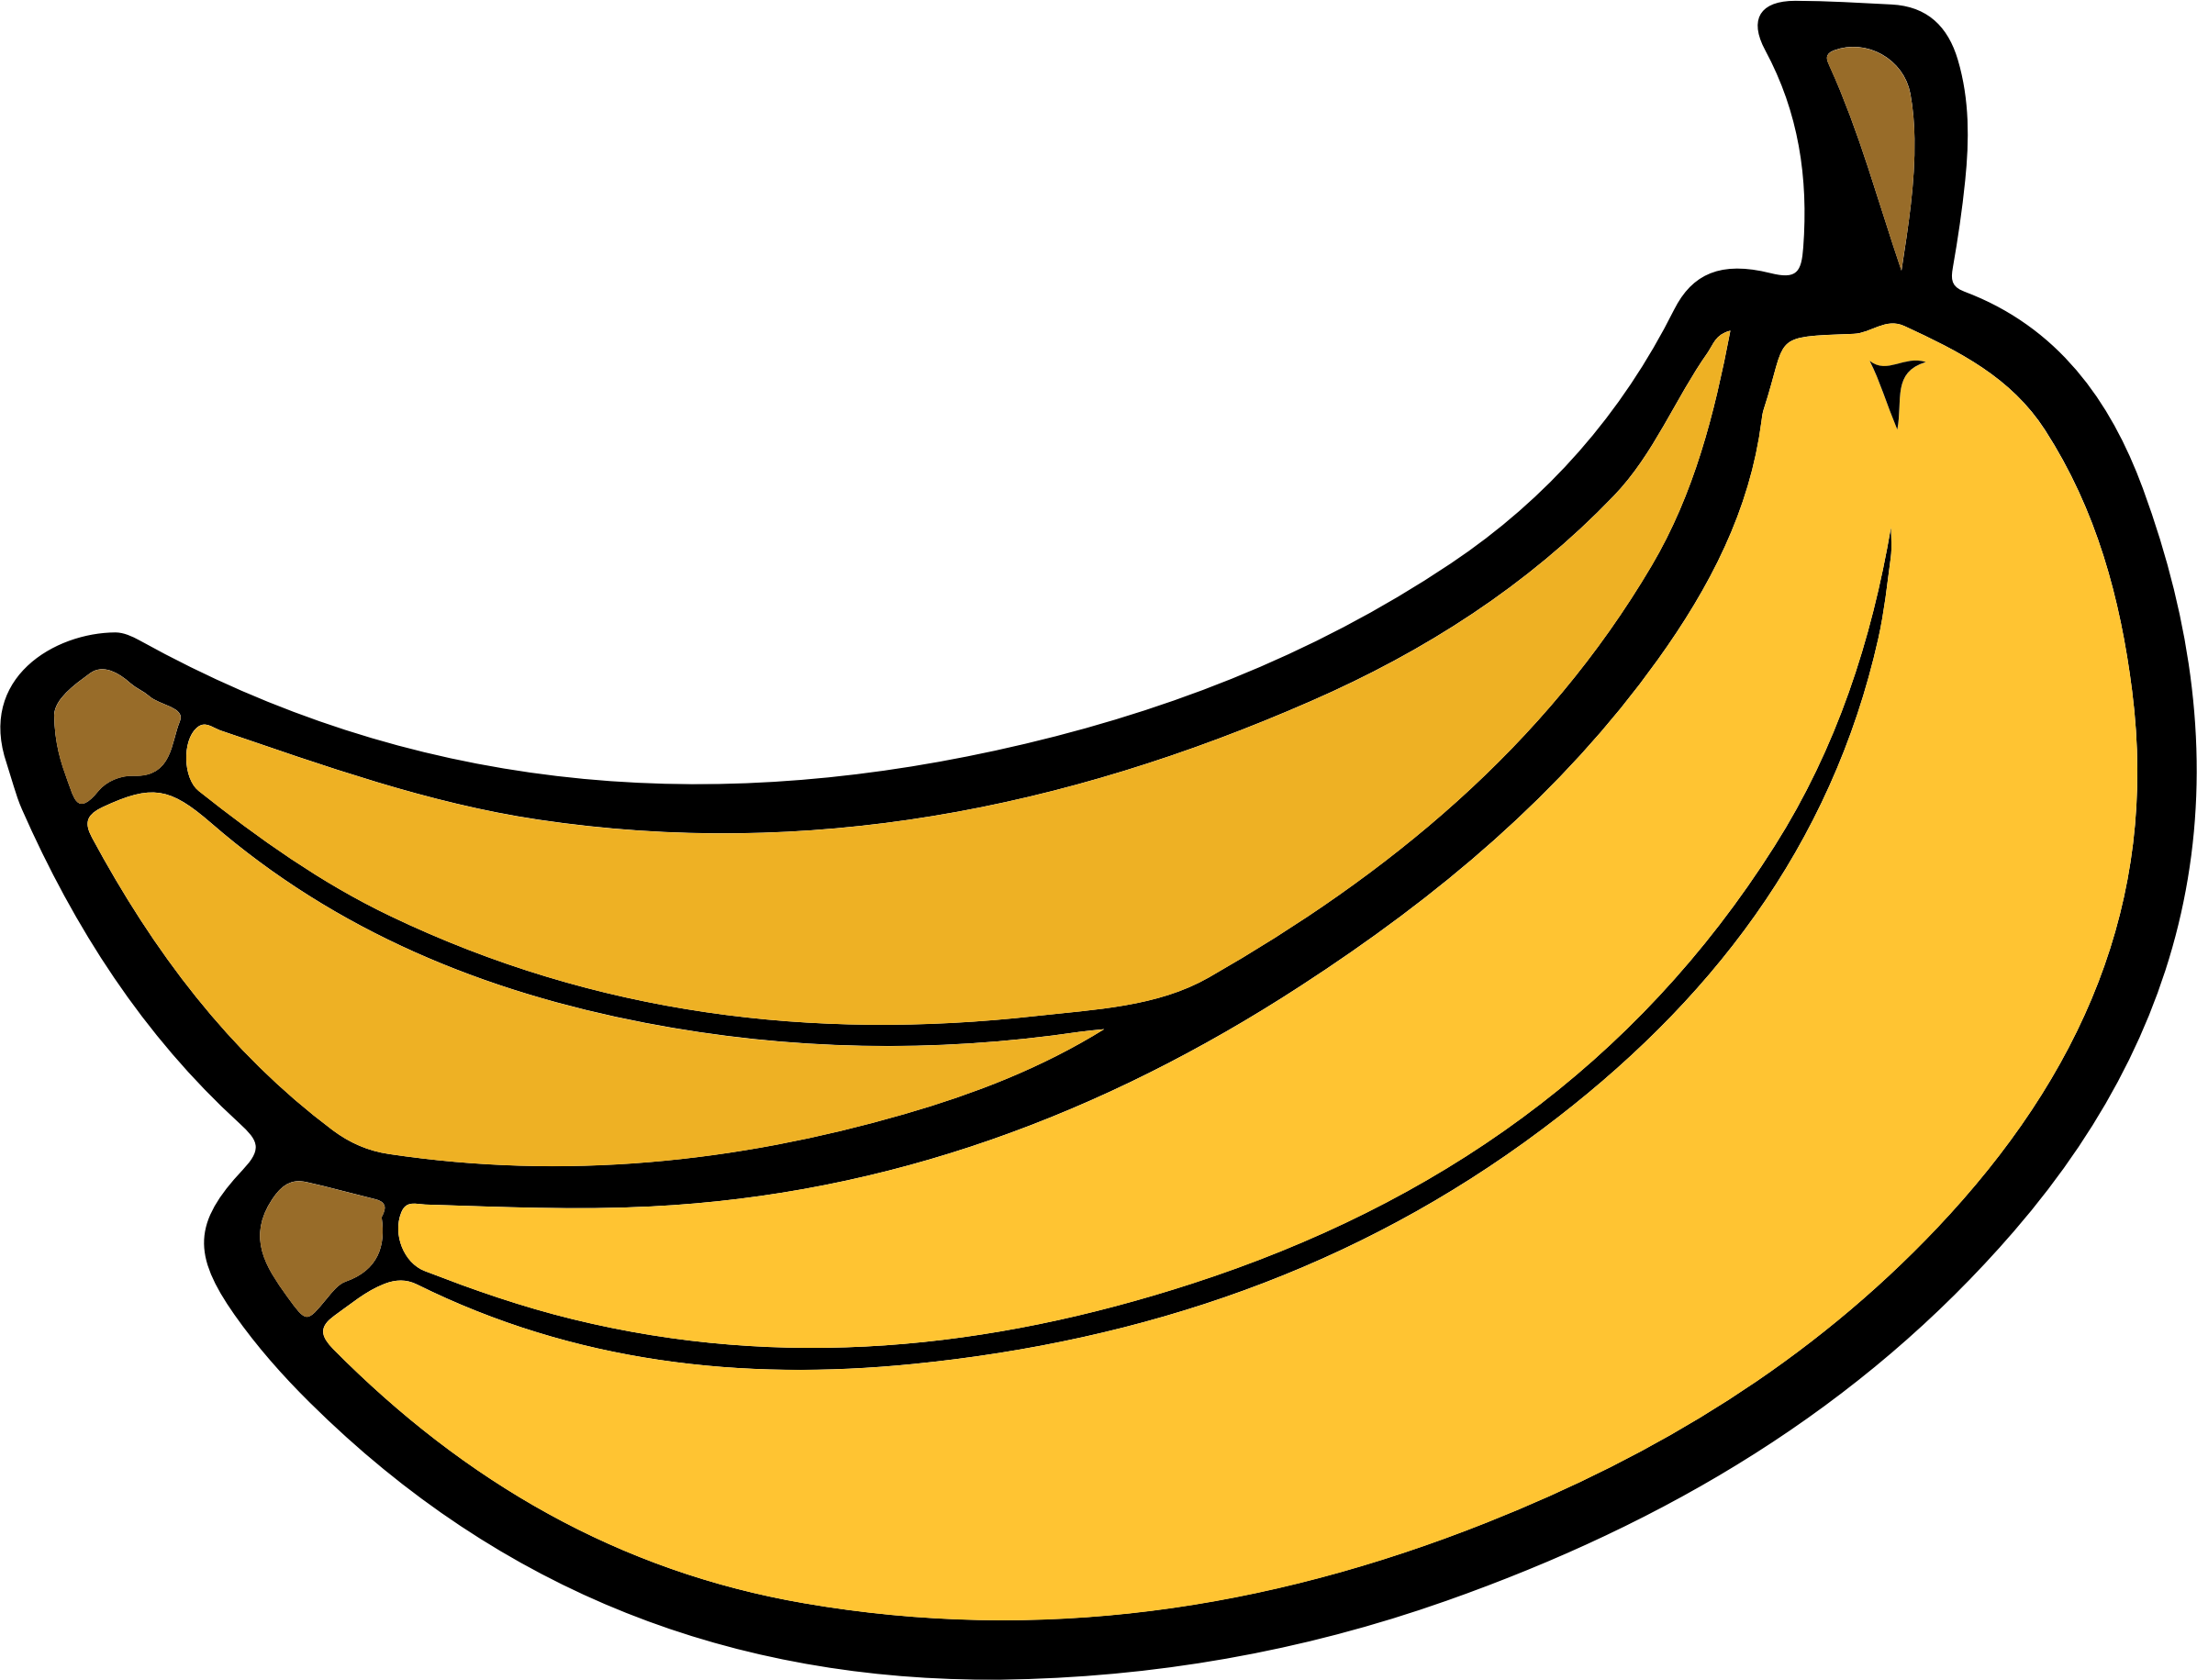 Banan clip transparent. Bananas graphic freeuse